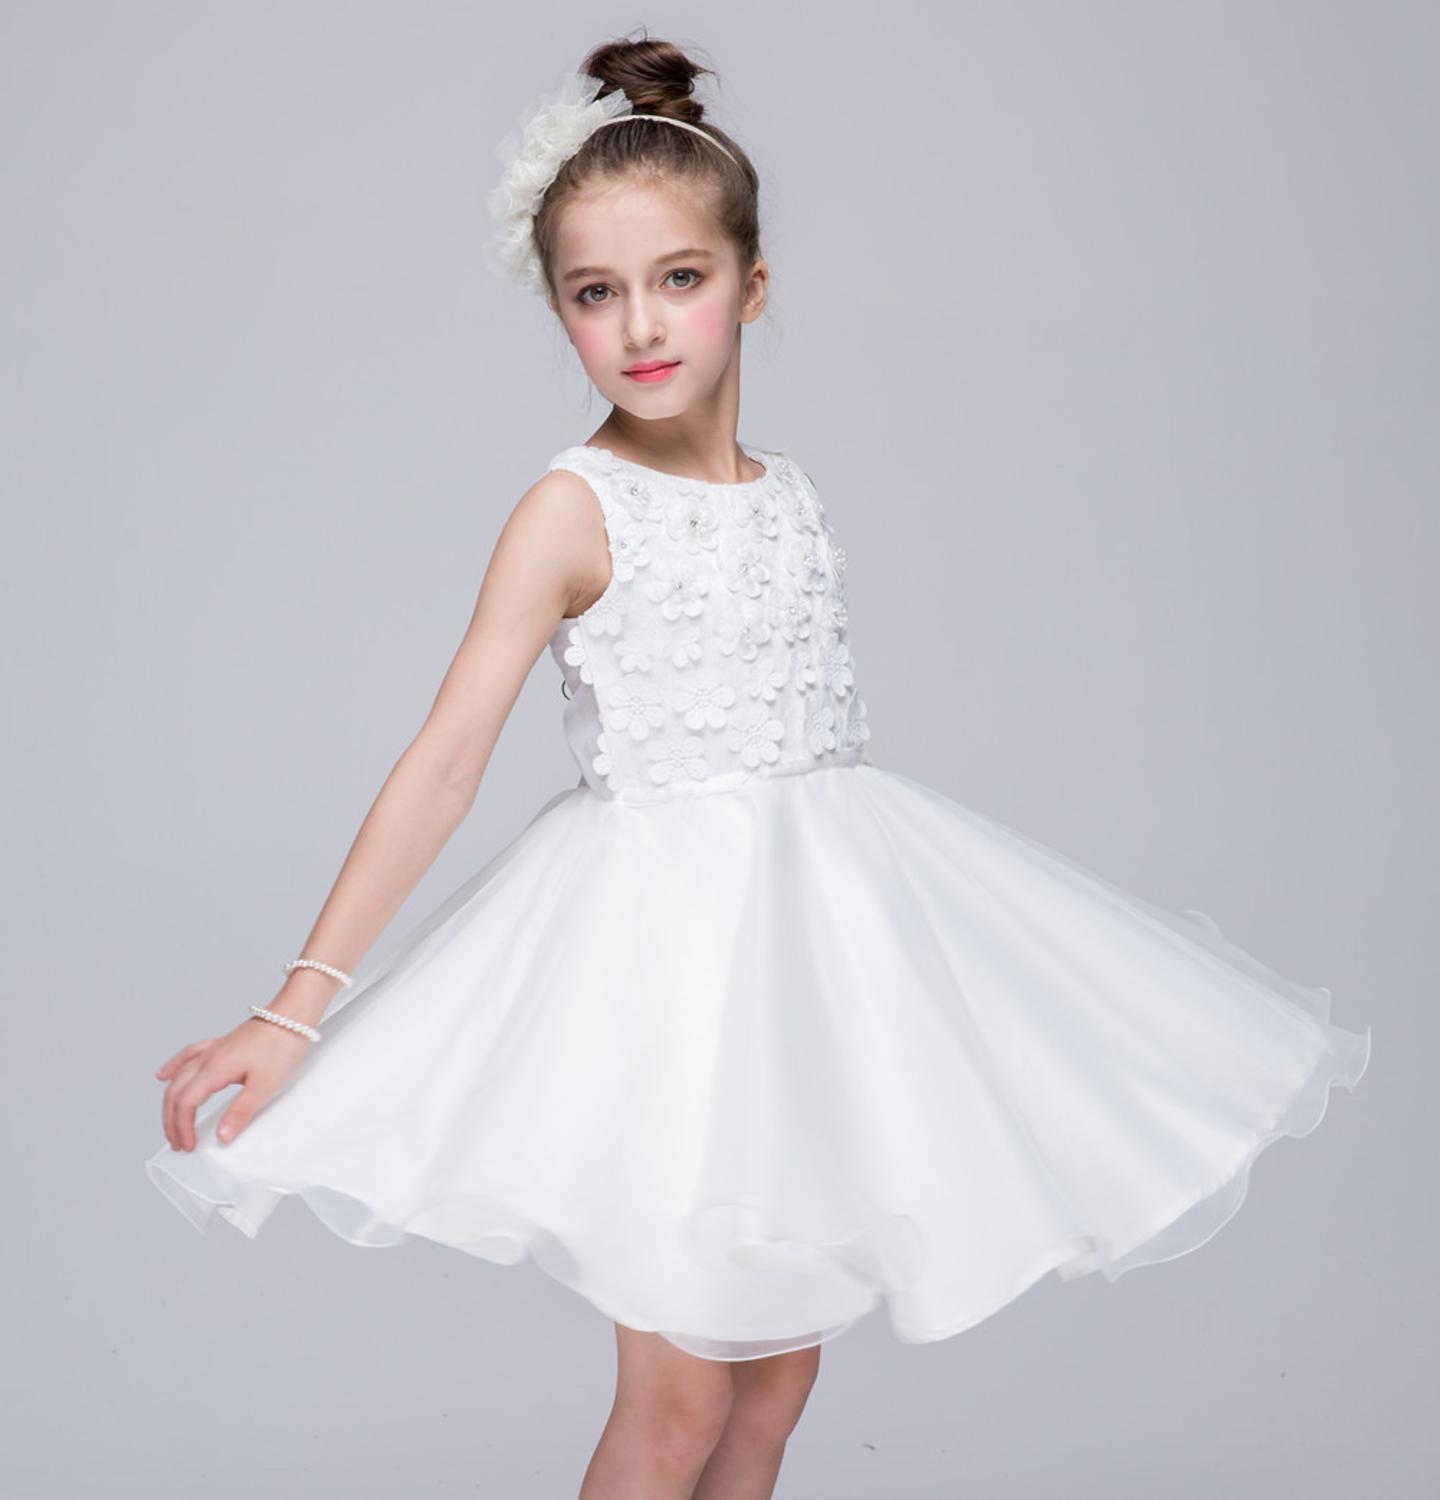 Compare prices on bridesmaid dress child online shoppingbuy low flower girl dress children bridesmaid toddler elegant dress pageant wedding bridal dresschina mainland ombrellifo Gallery